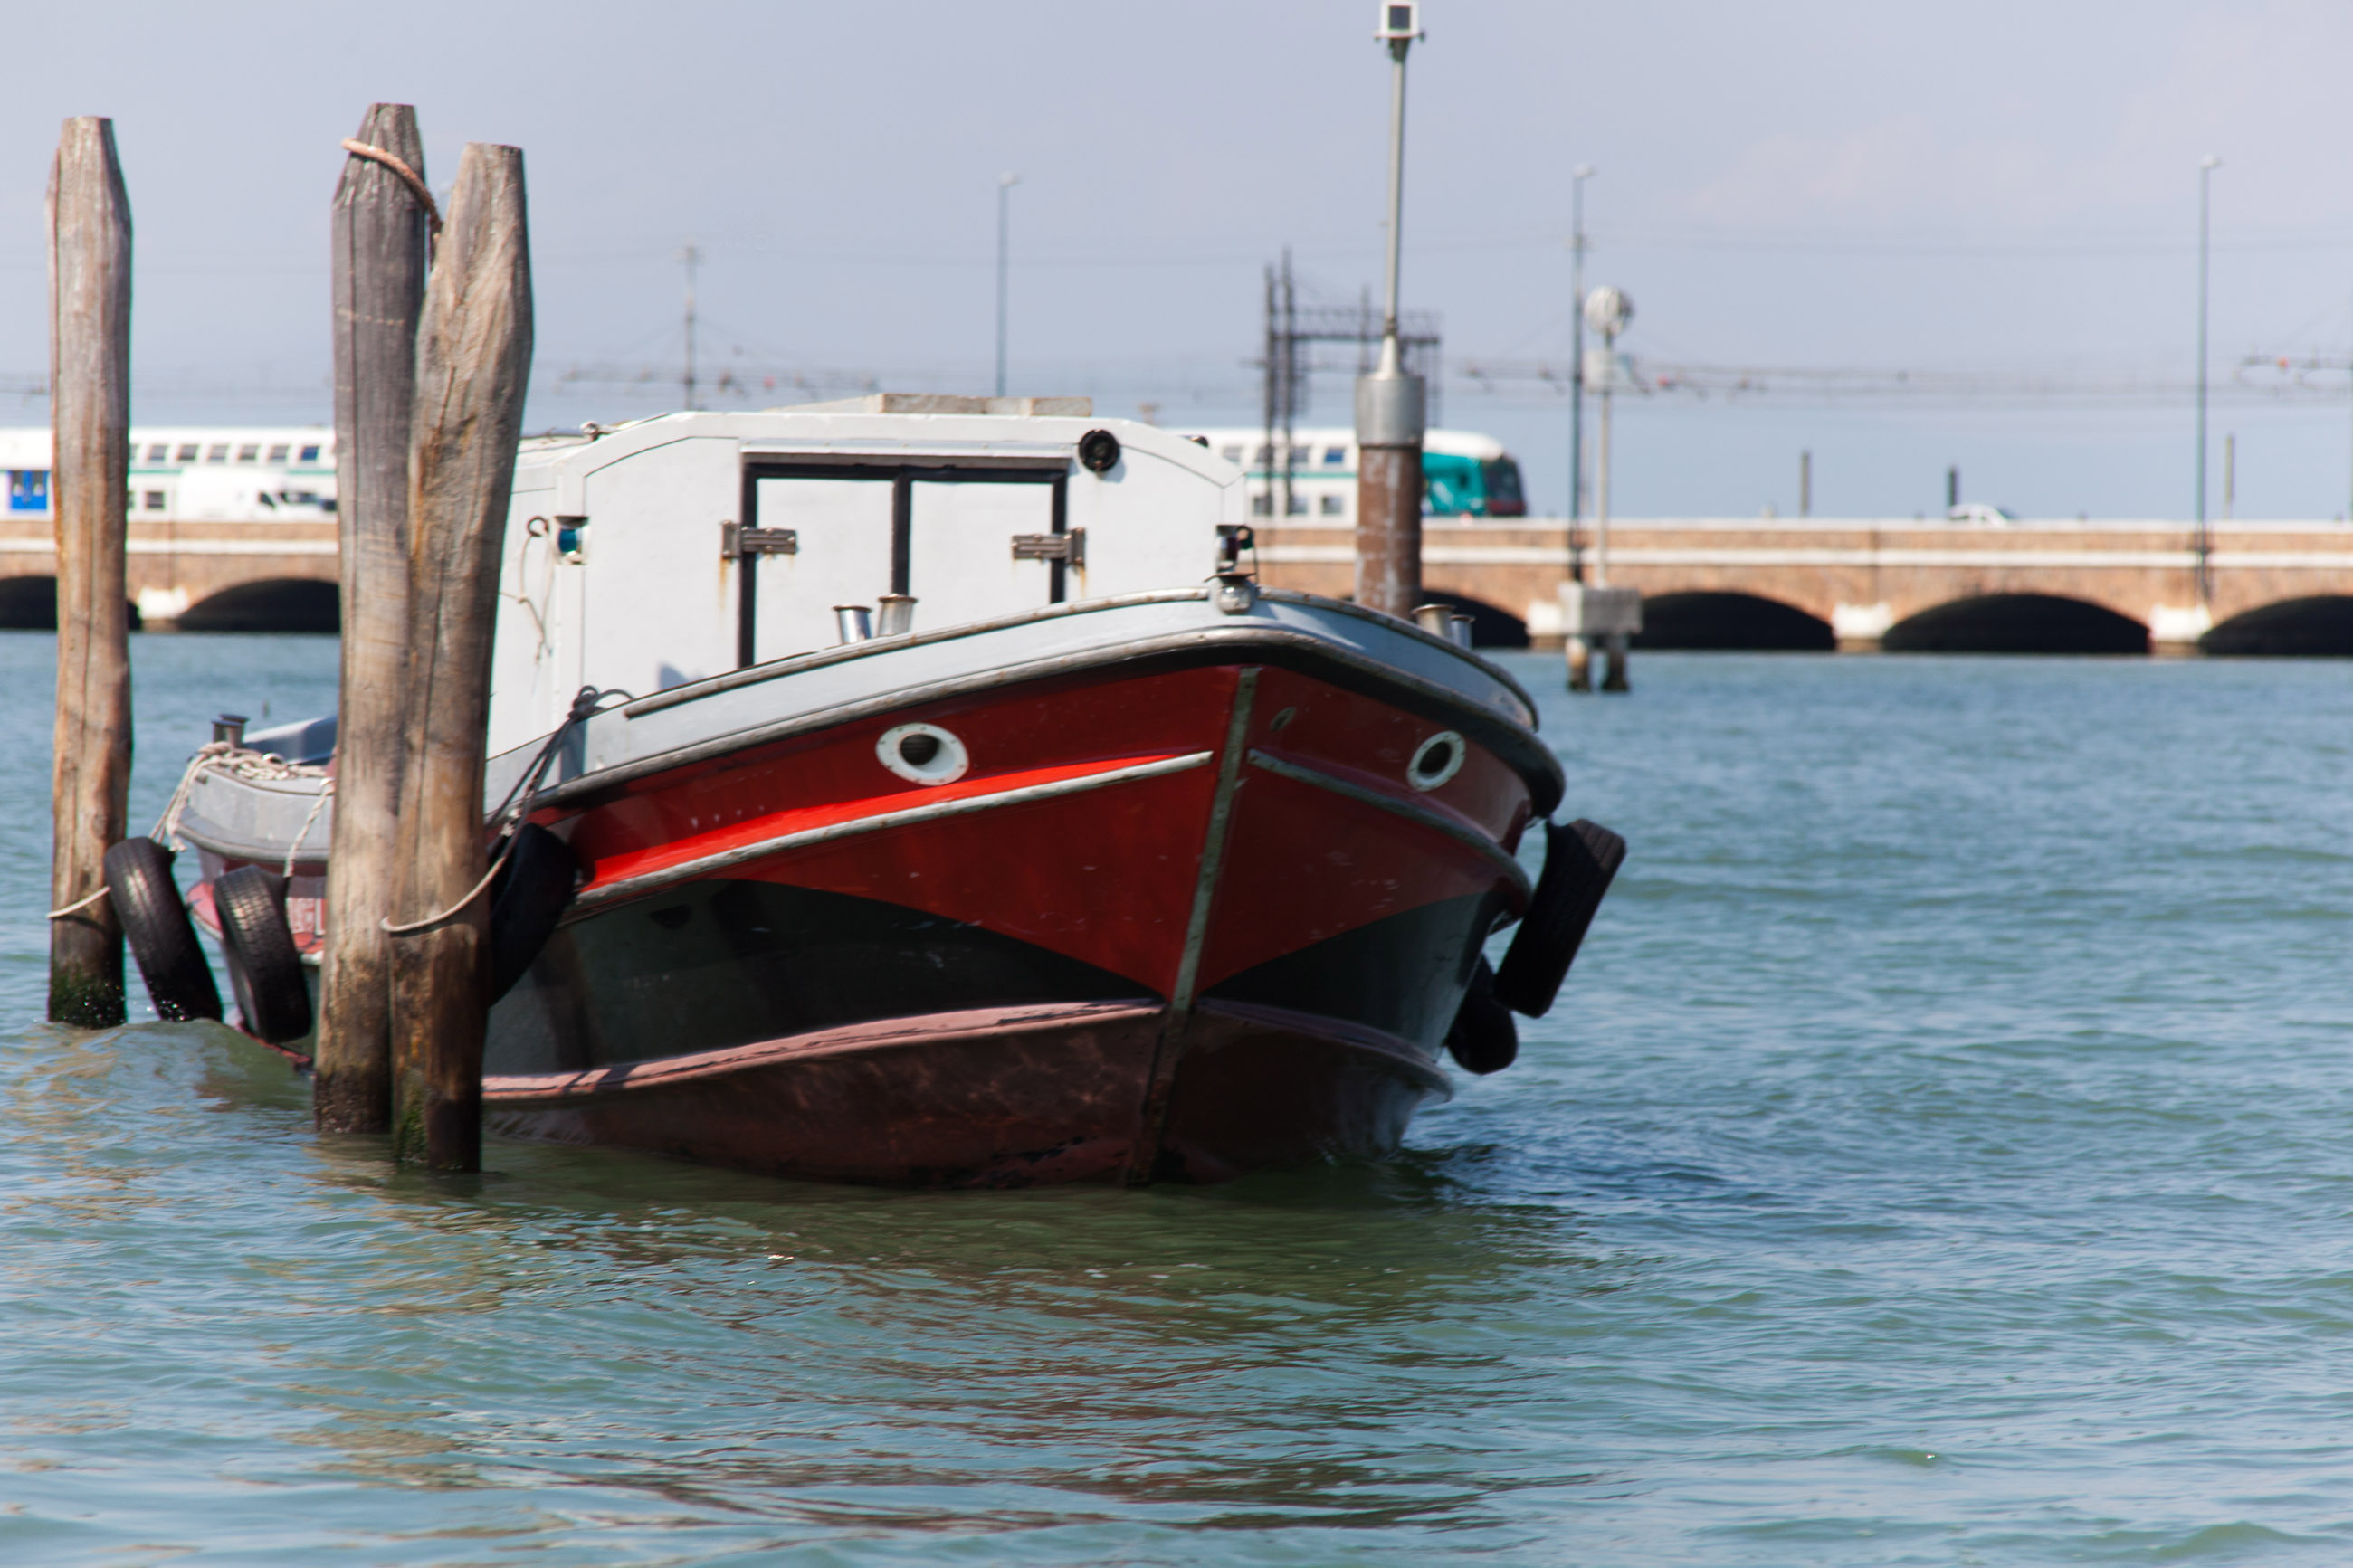 Moored boat with train in background, Ancient, Train, Italy, Landmark, HQ Photo